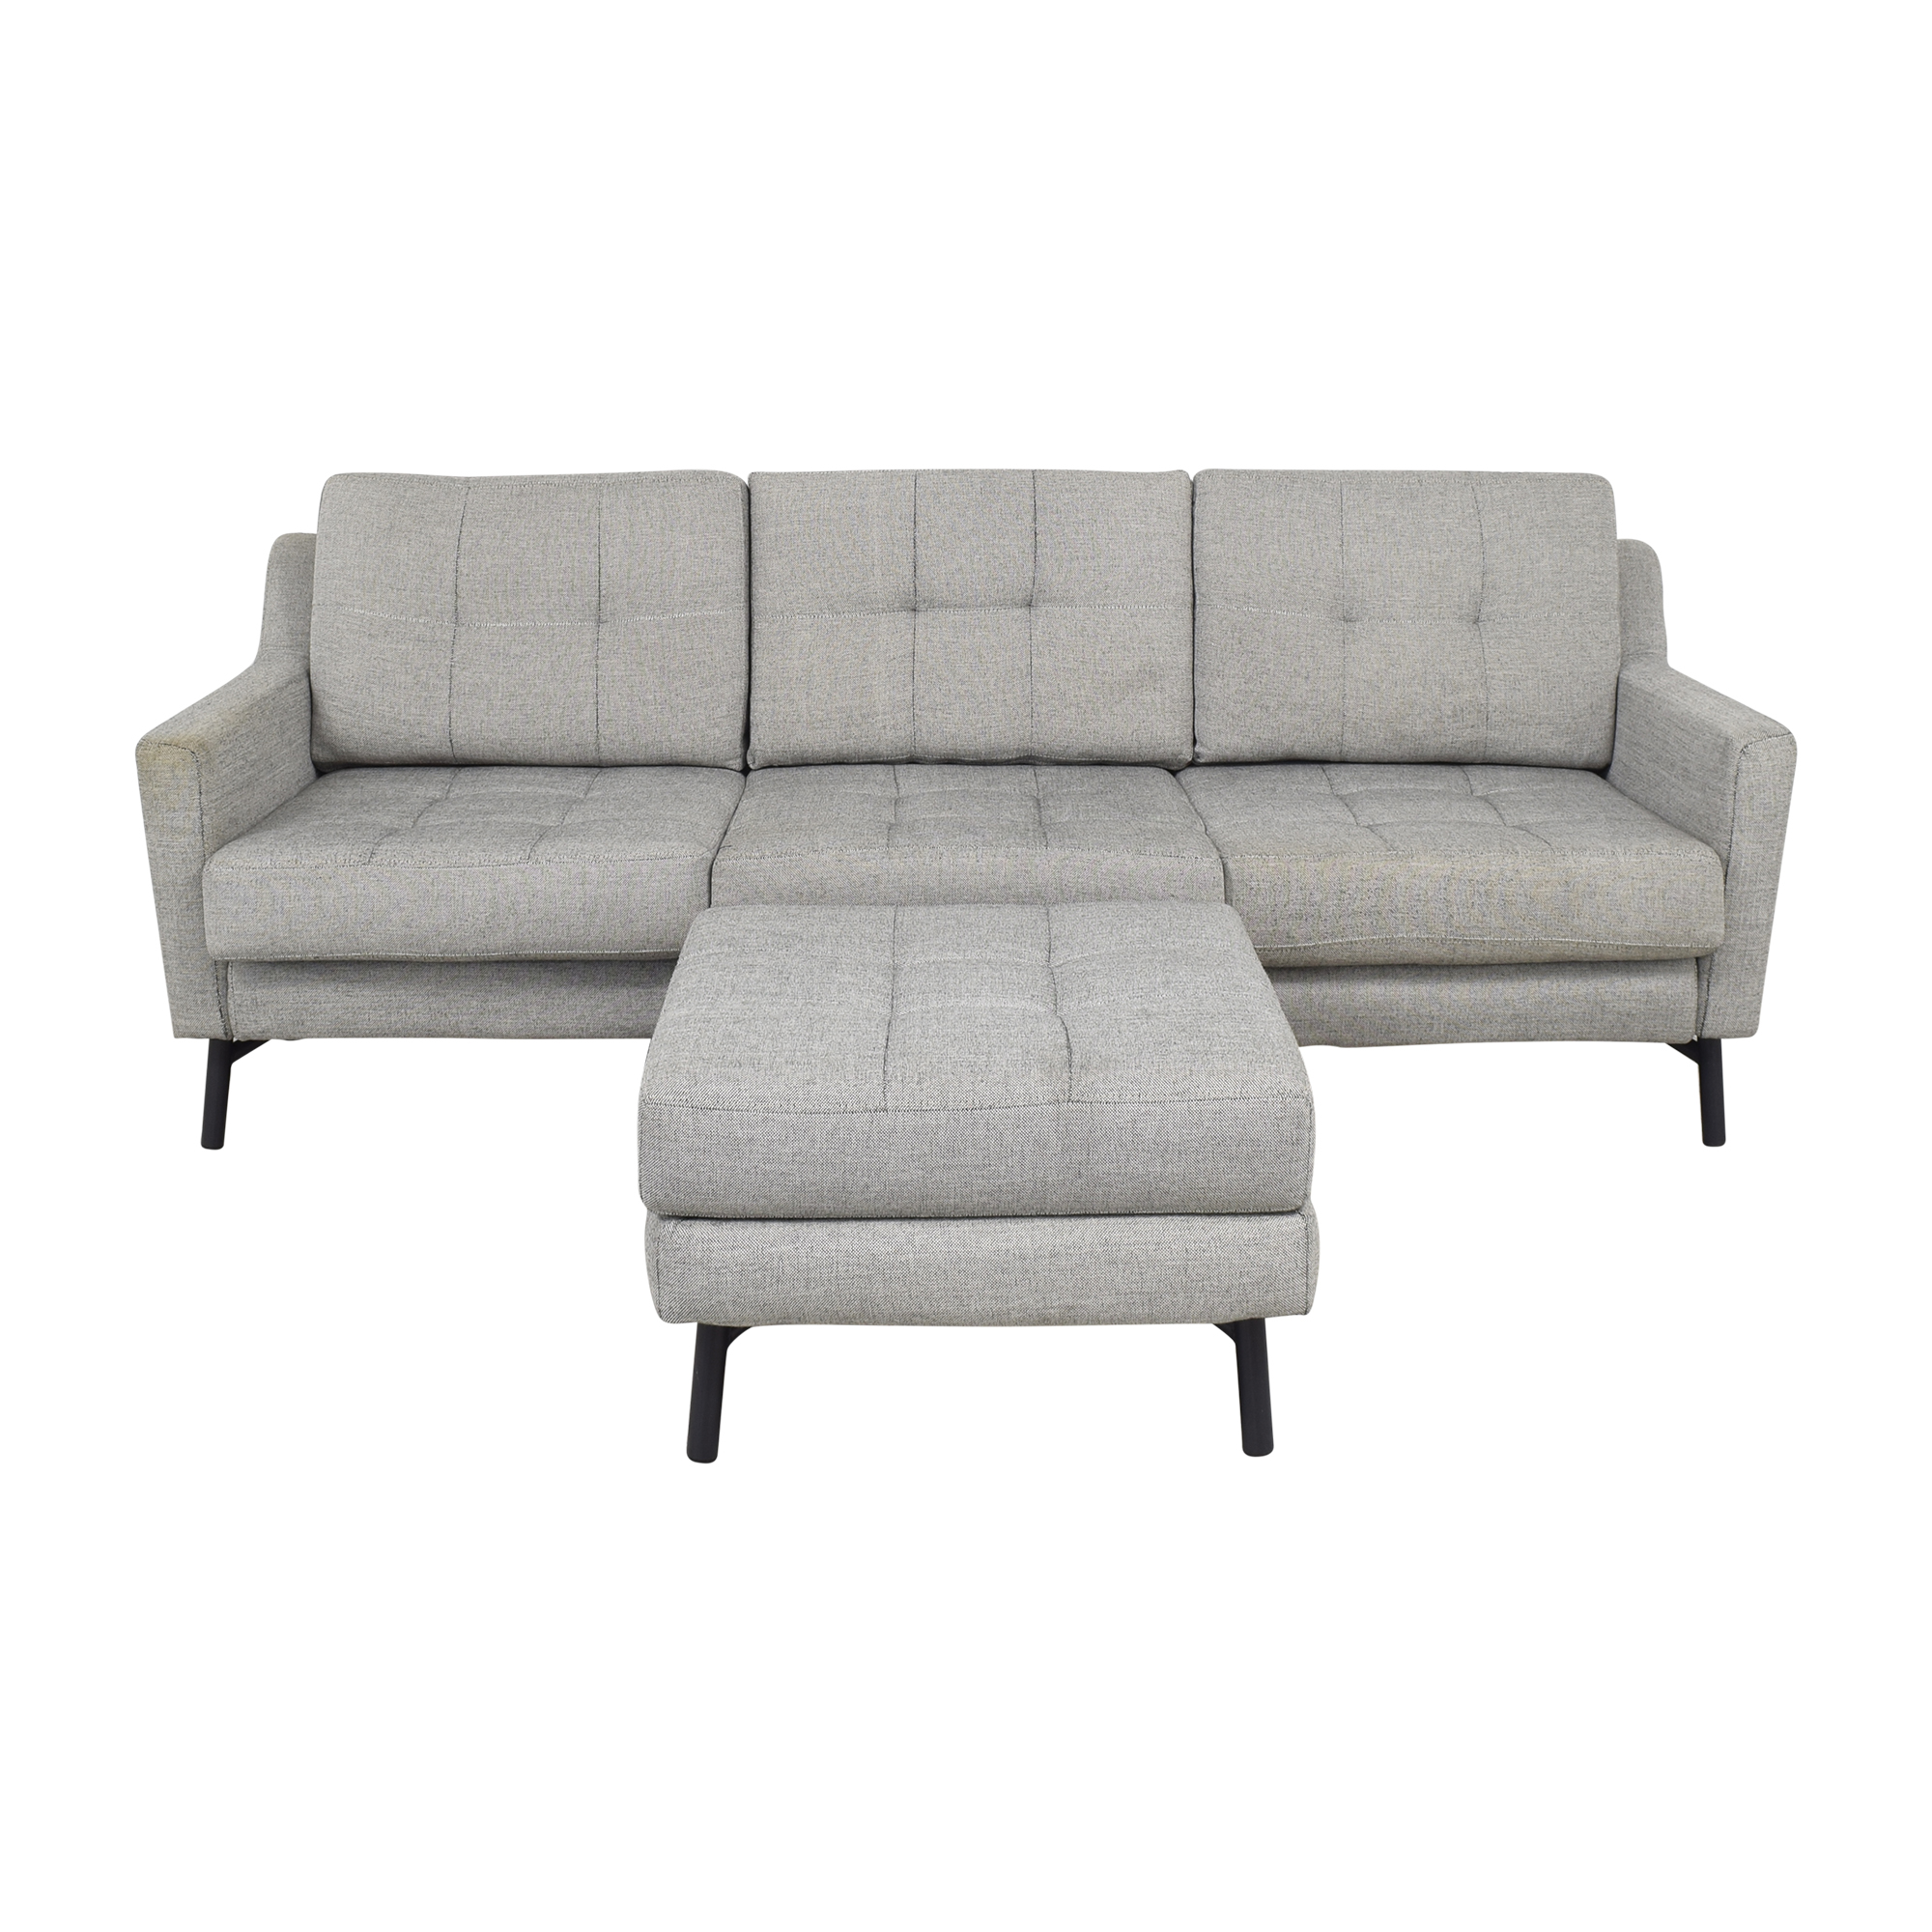 Burrow Block Nomad Sofa with Ottoman / Sofas